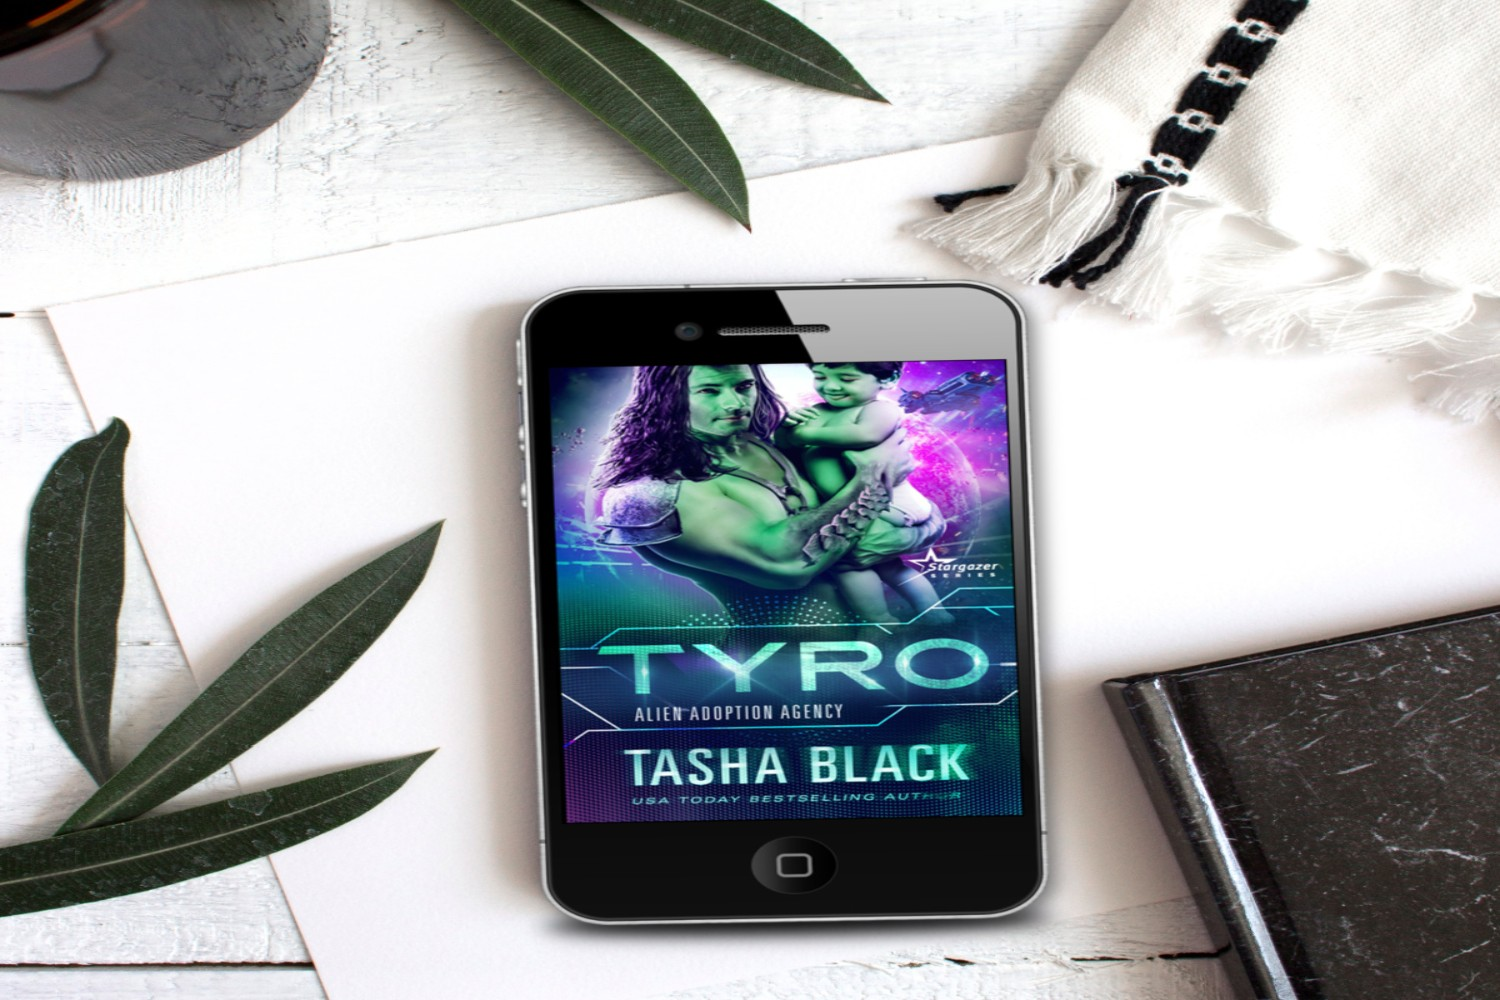 Tyro by Tasha Black